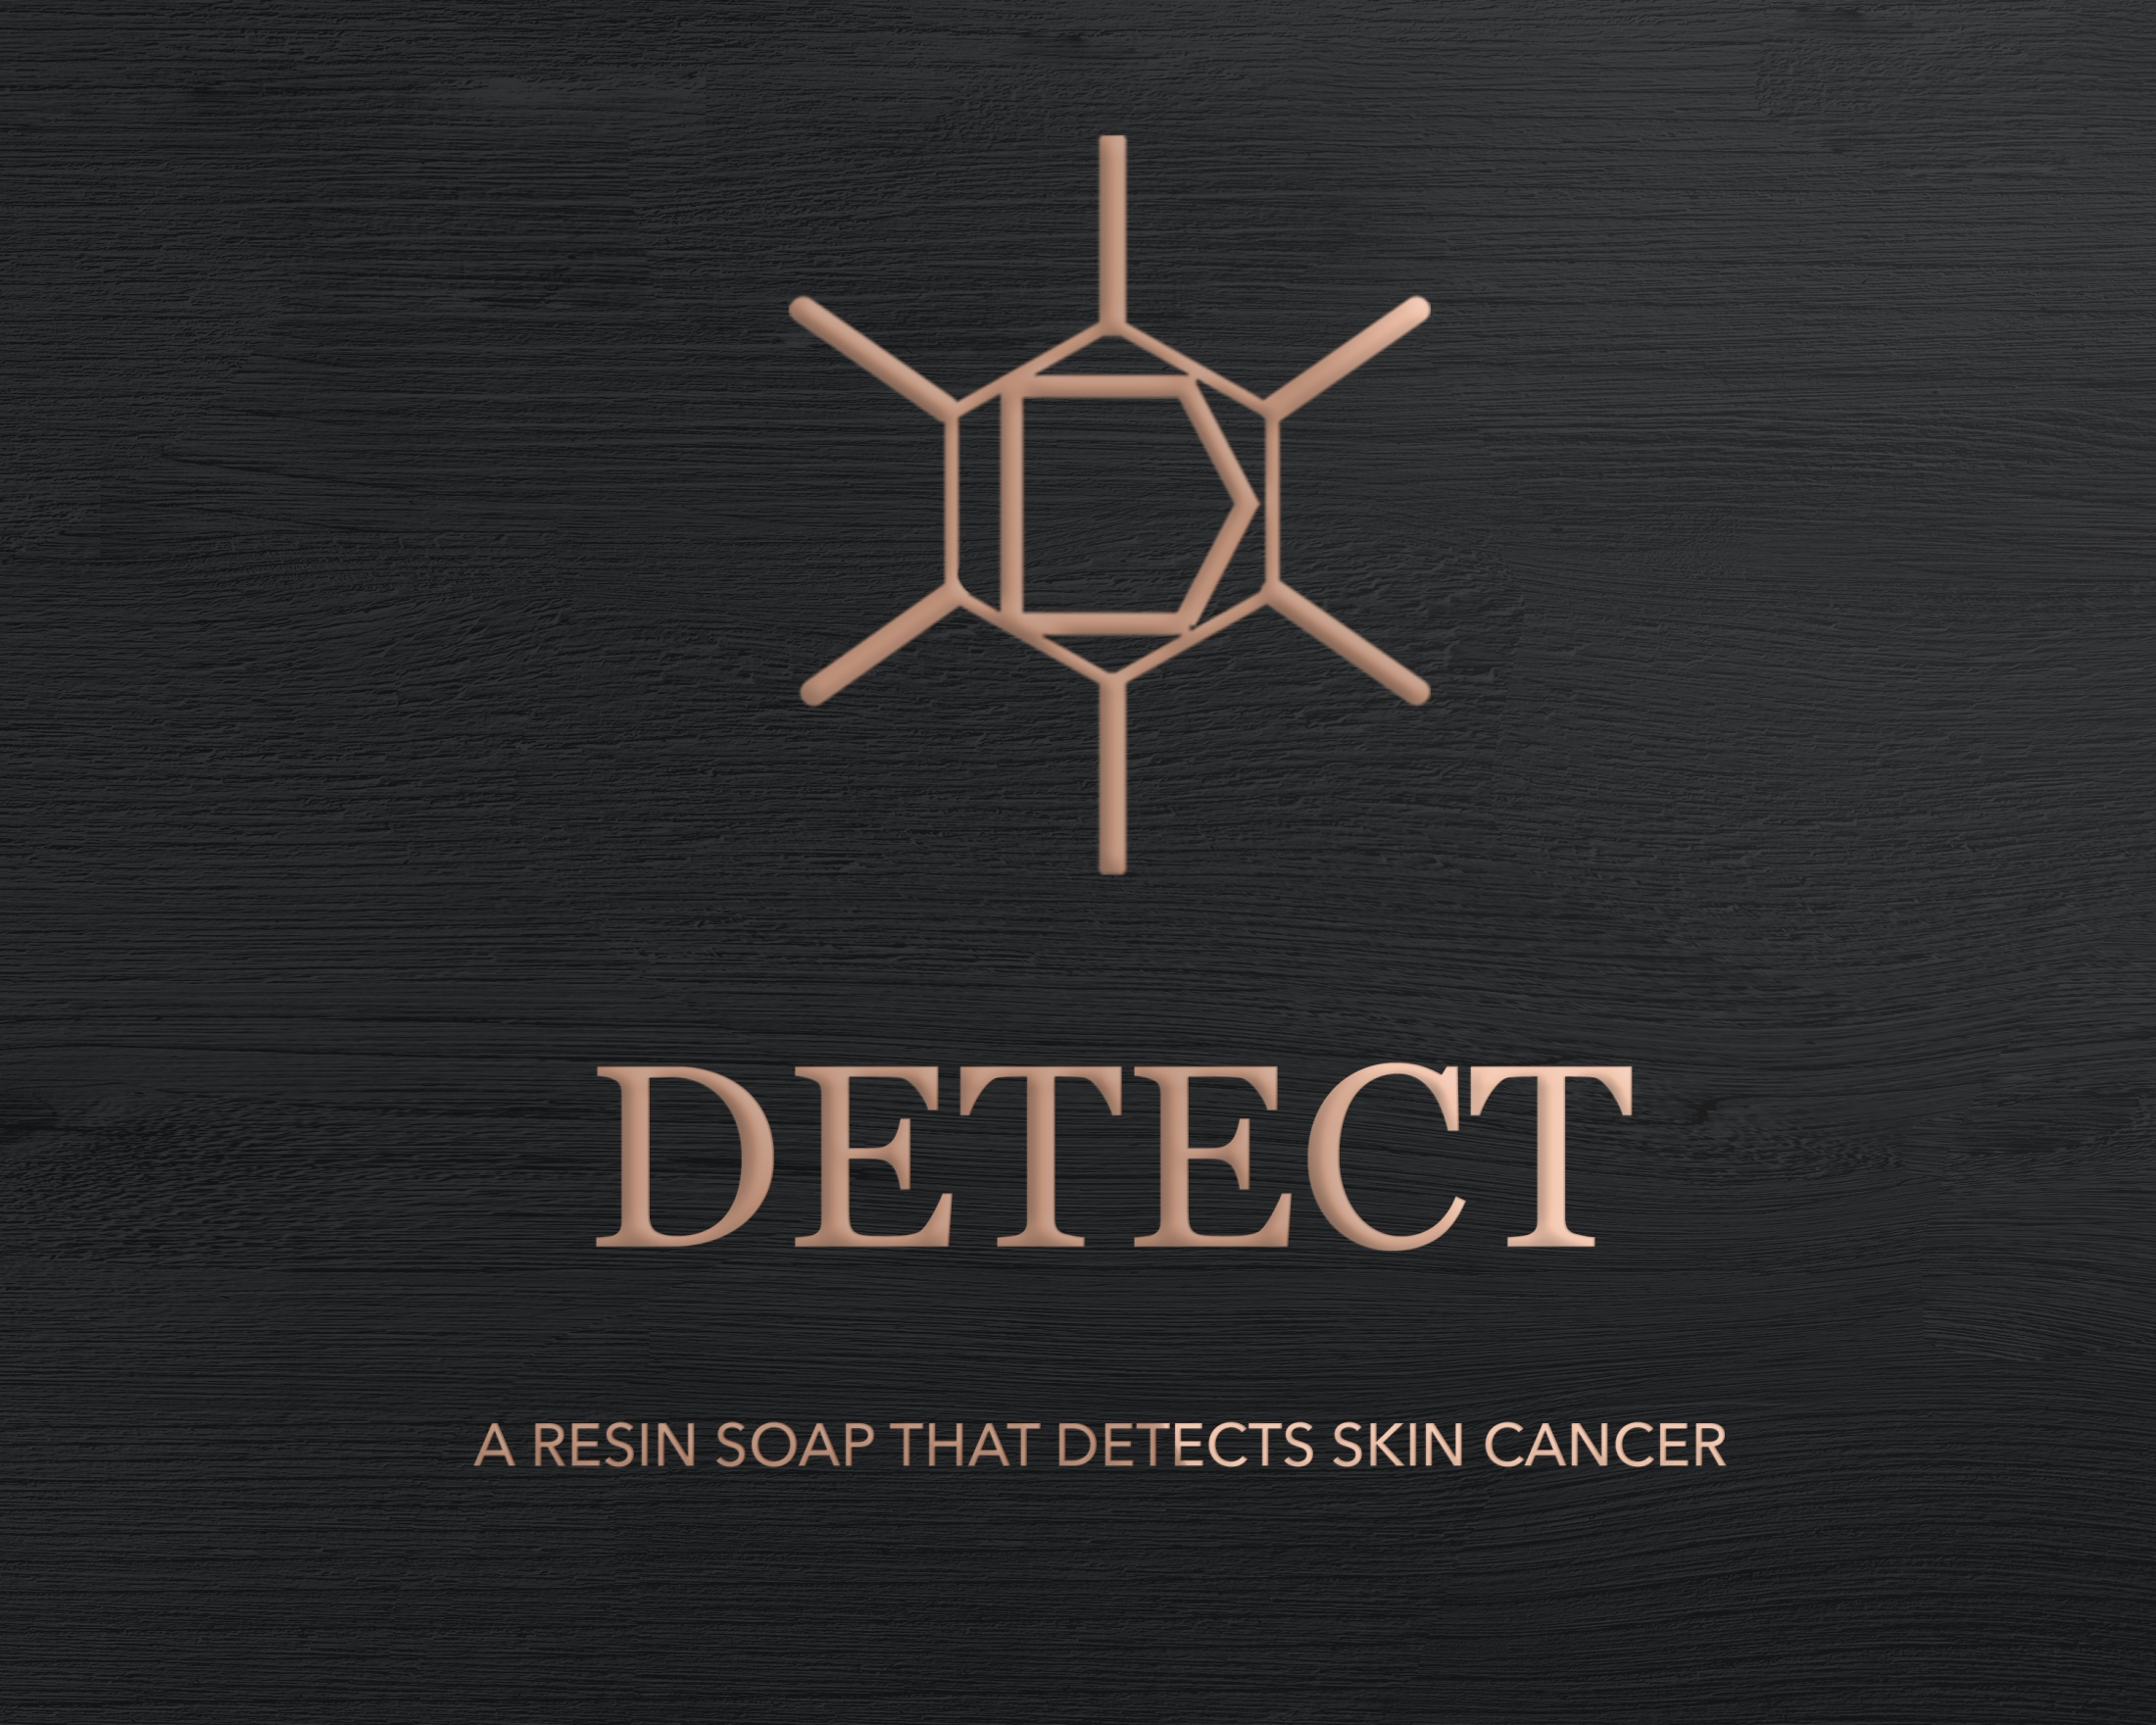 Thumbnail for Detect - A resin soap that detects skin cancer.